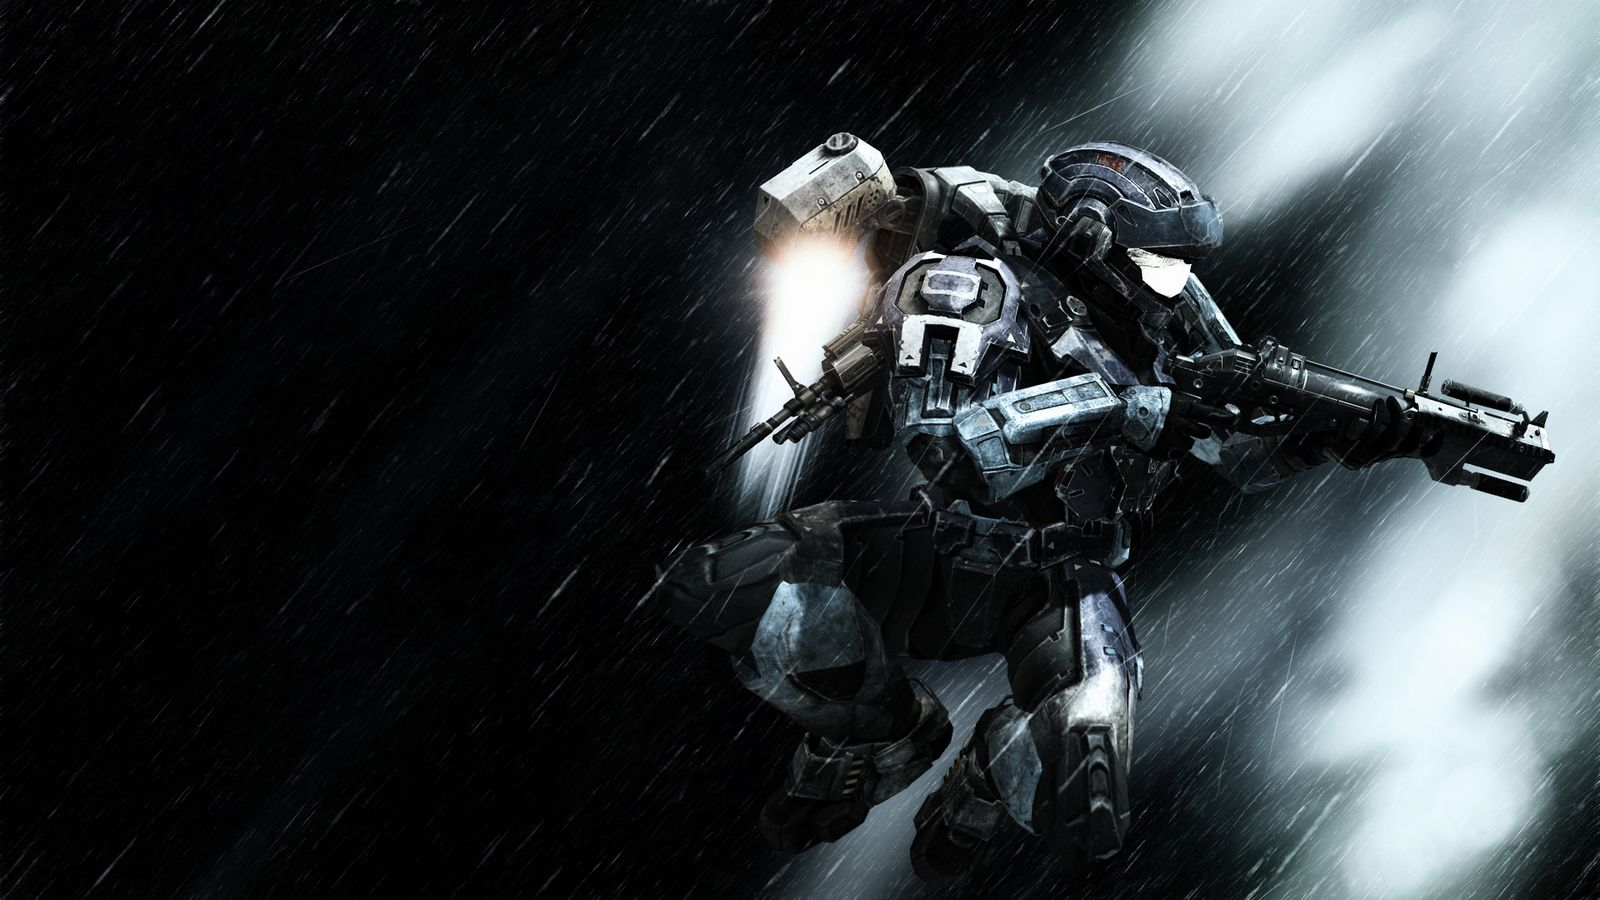 Halo action Wallpaper